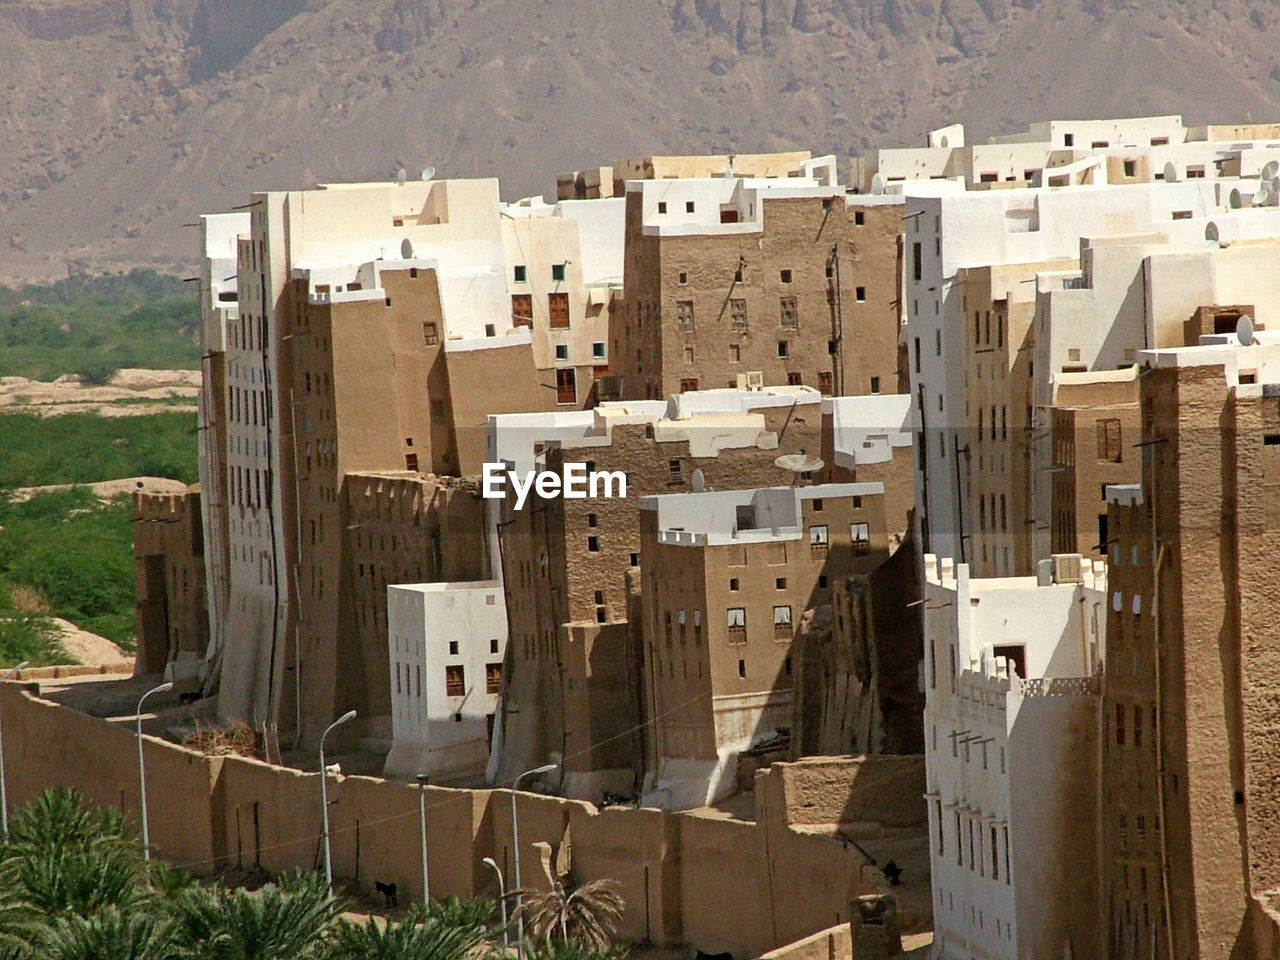 architecture, built structure, building, building exterior, high angle view, city, day, residential district, no people, nature, outdoors, house, travel destinations, travel, sunlight, town, tourism, old, townscape, apartment